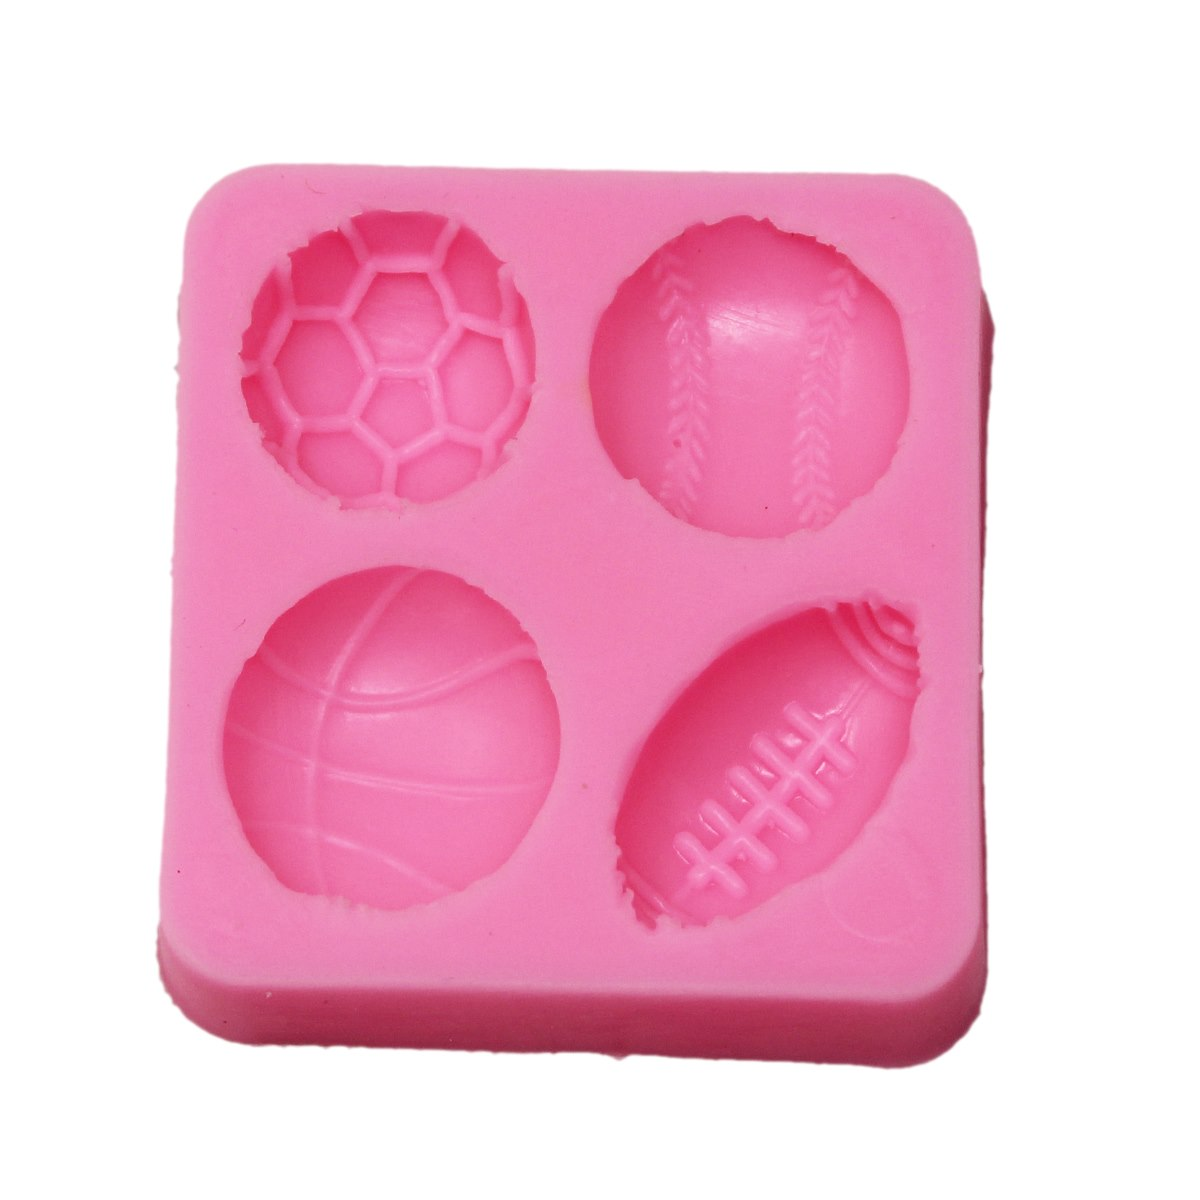 Resin Silicone Mould Sports Ball Design